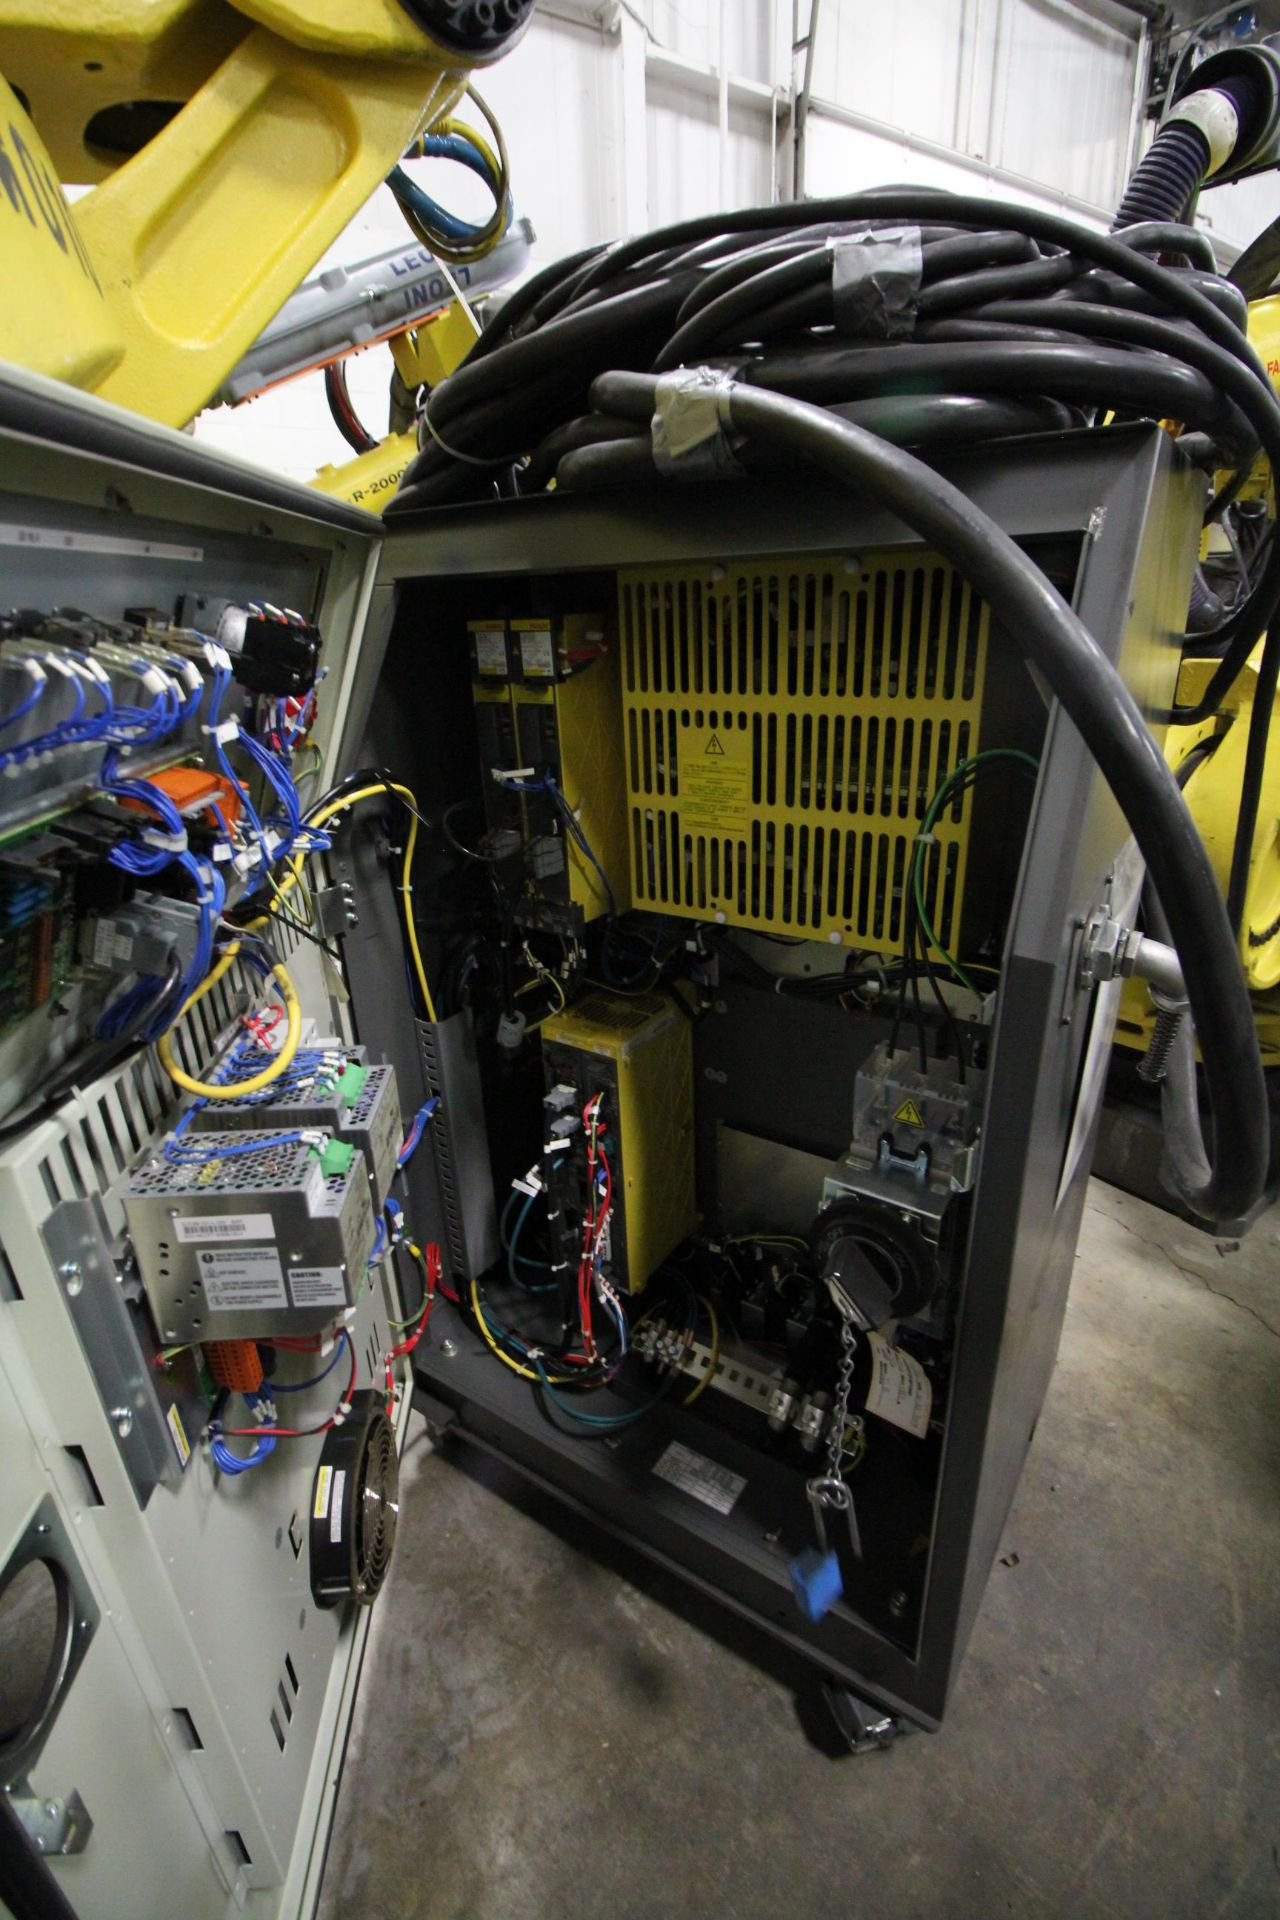 FANUC ROBOT M-900iA/400L WITH R-30iA CONTROLLER, TEACHPENDANT AND CABLES, SN 153431, YEAR 2014 - Image 7 of 11